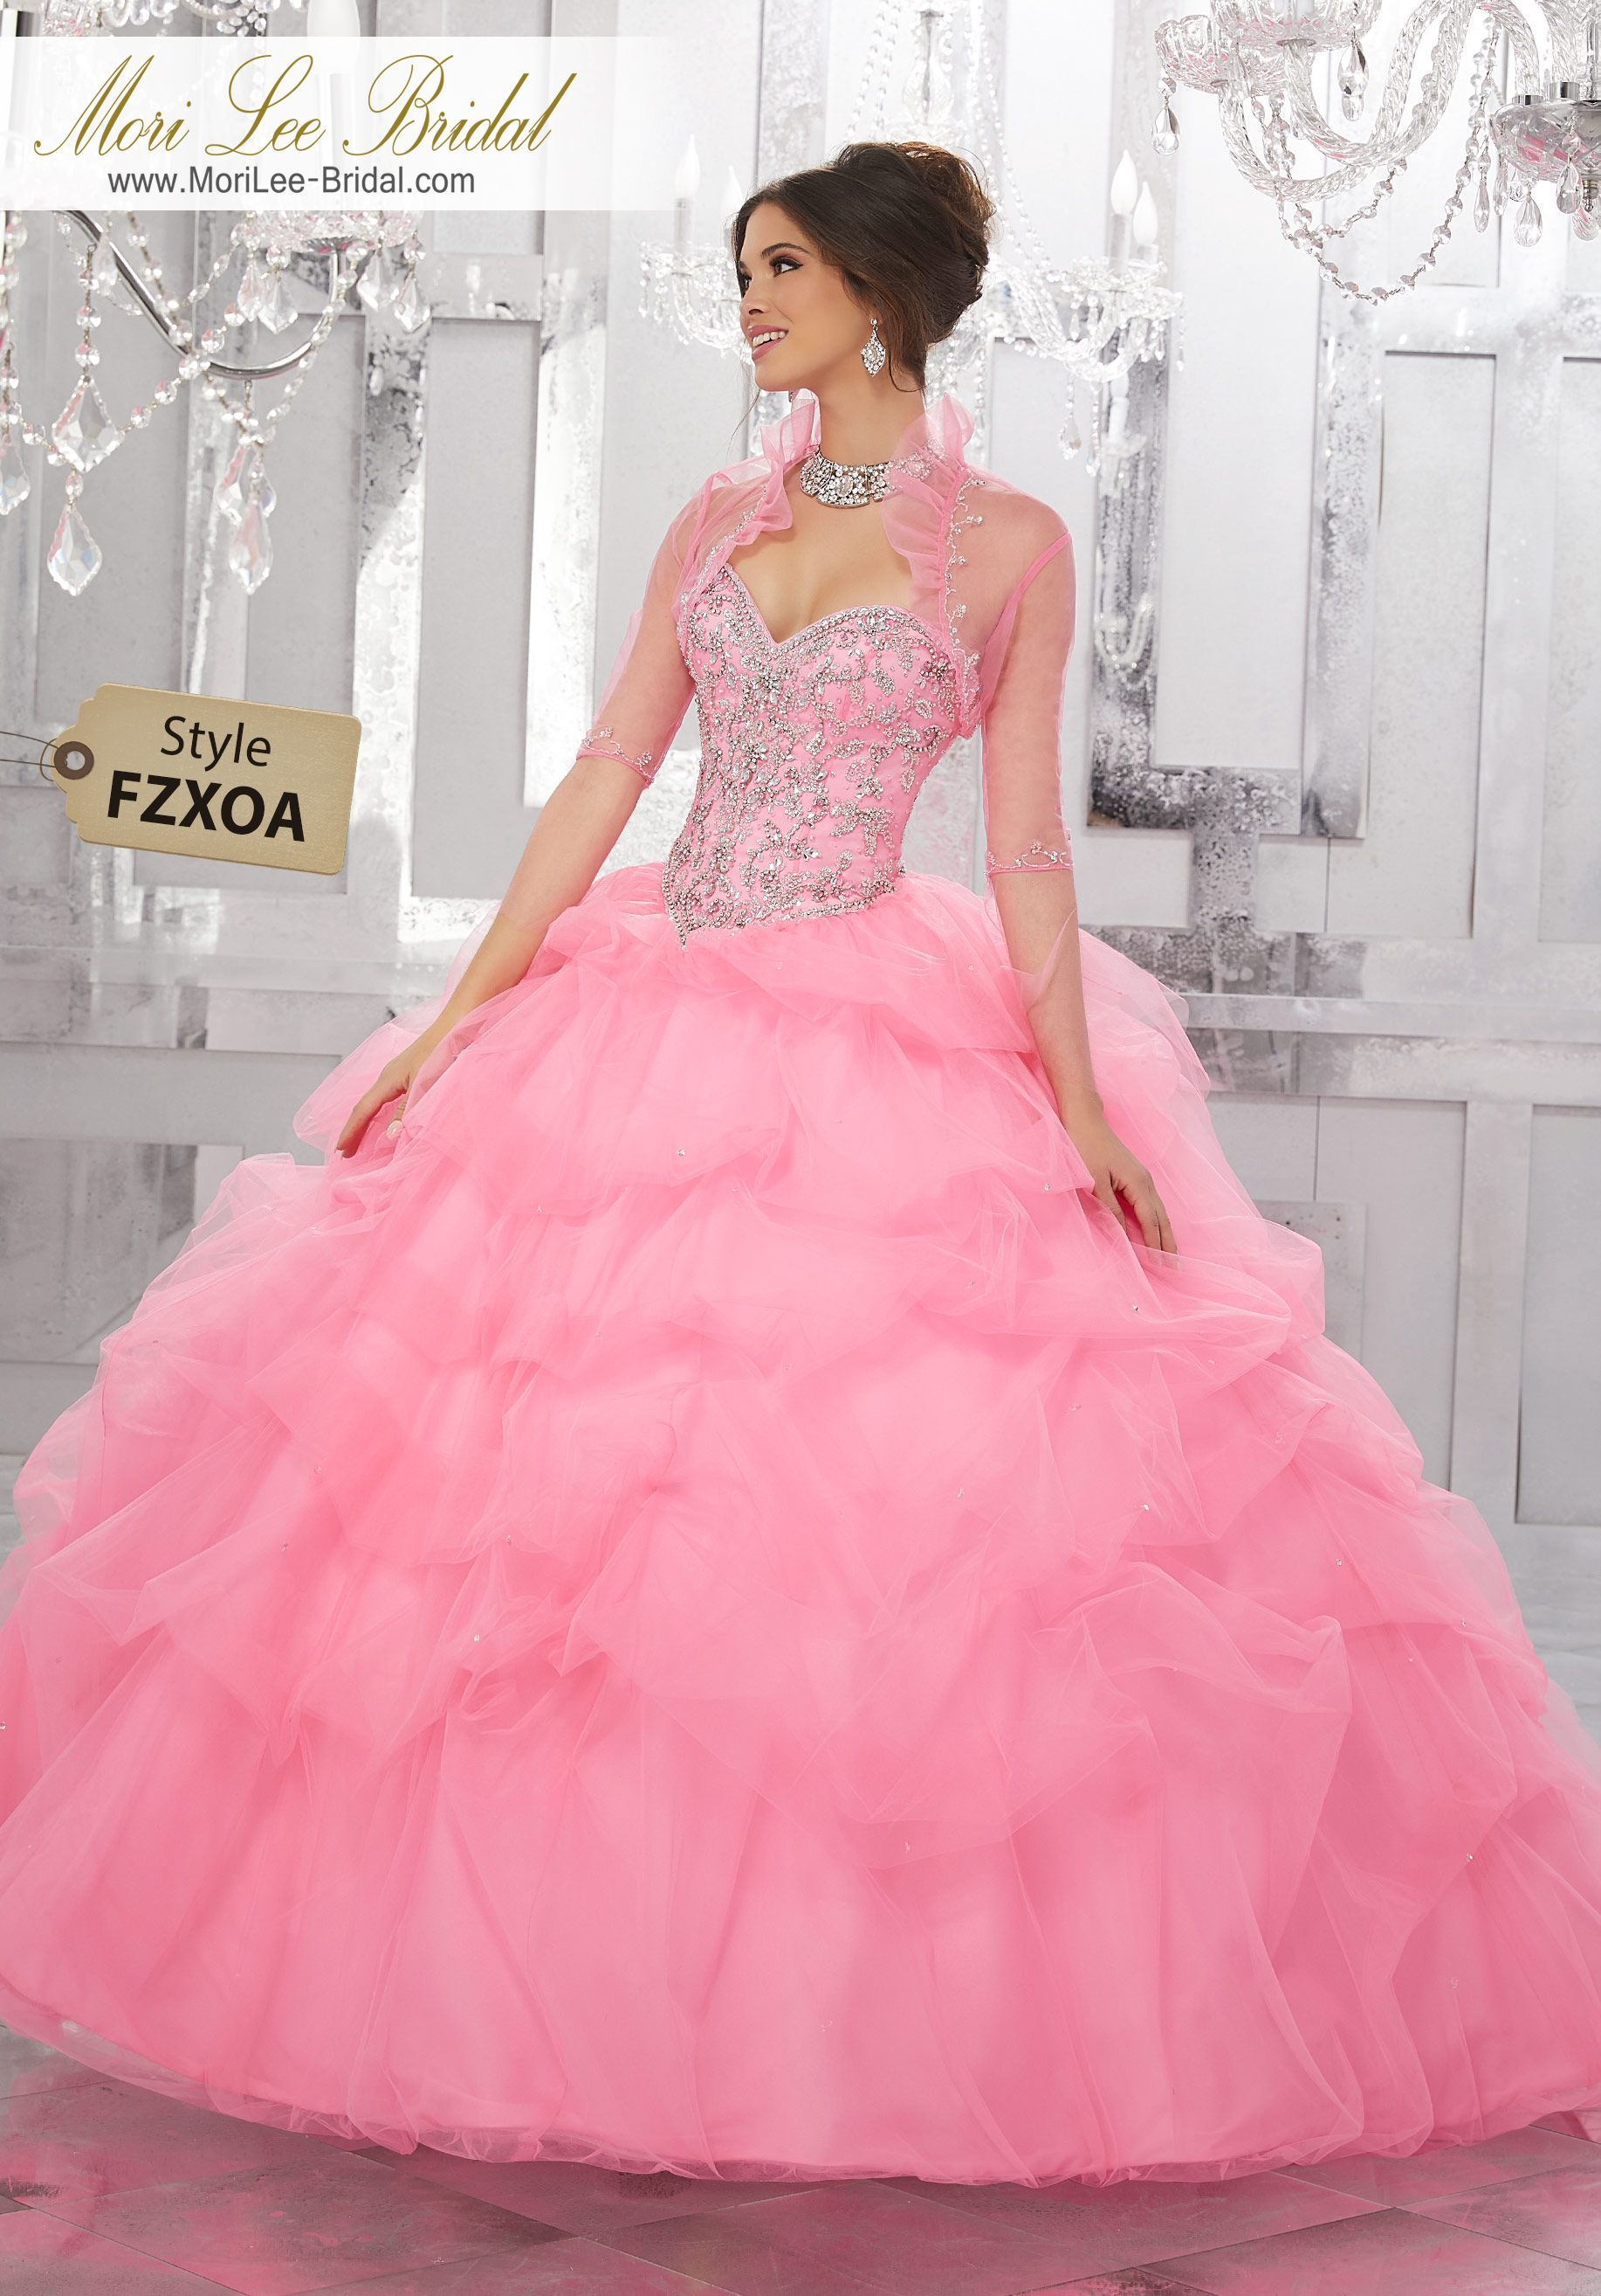 Style FZXOA Rhinestone and Crystal Beading on a Ruched Tulle Ball ...